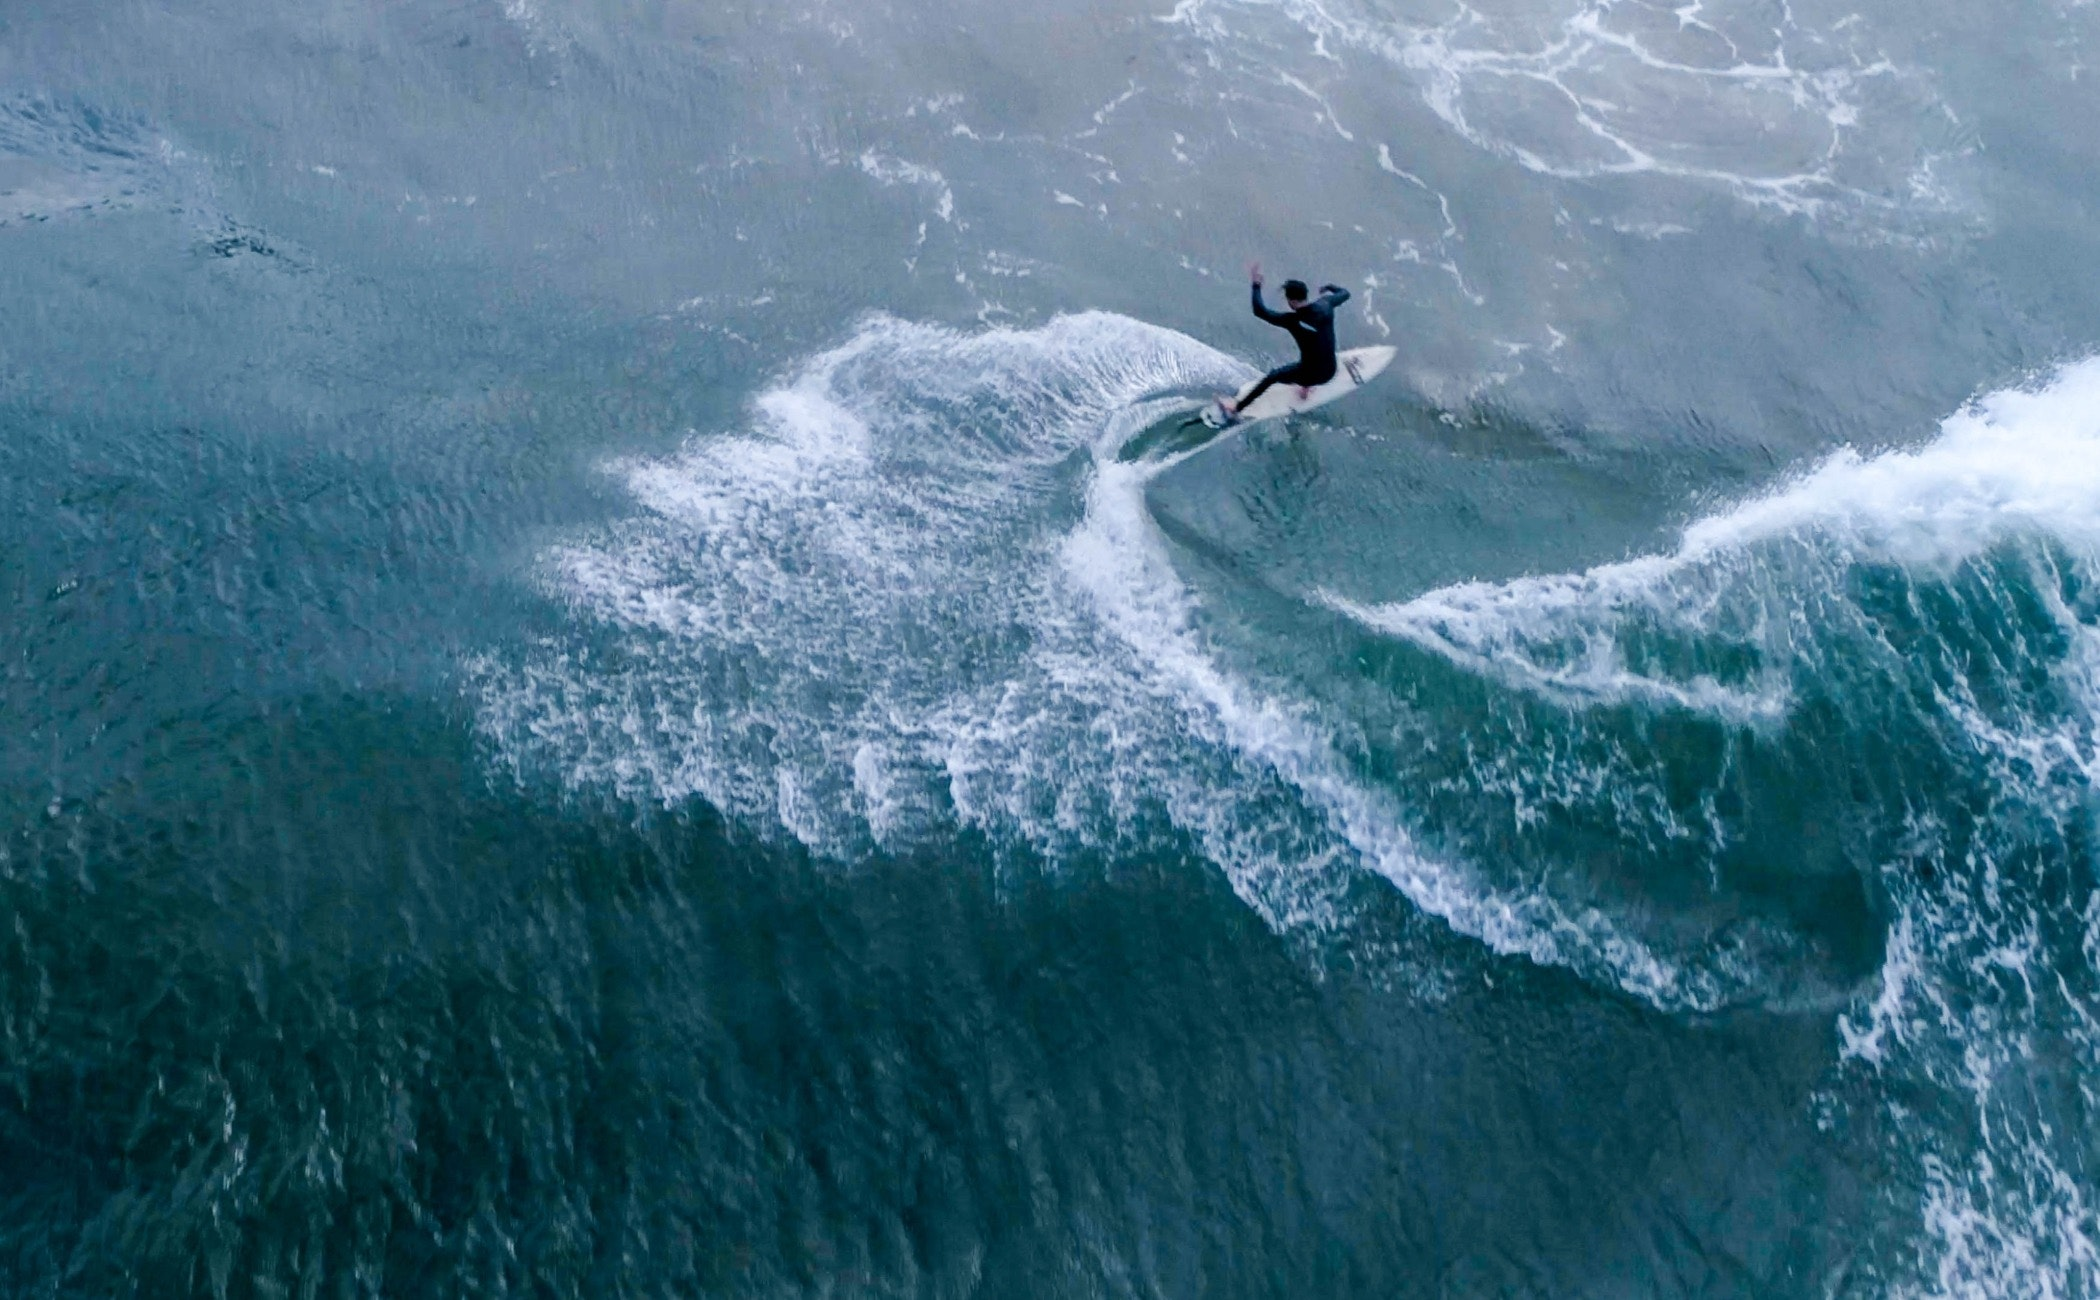 outdoors,nature,ocean,sea,water,human,person,sea waves,sport,surfing